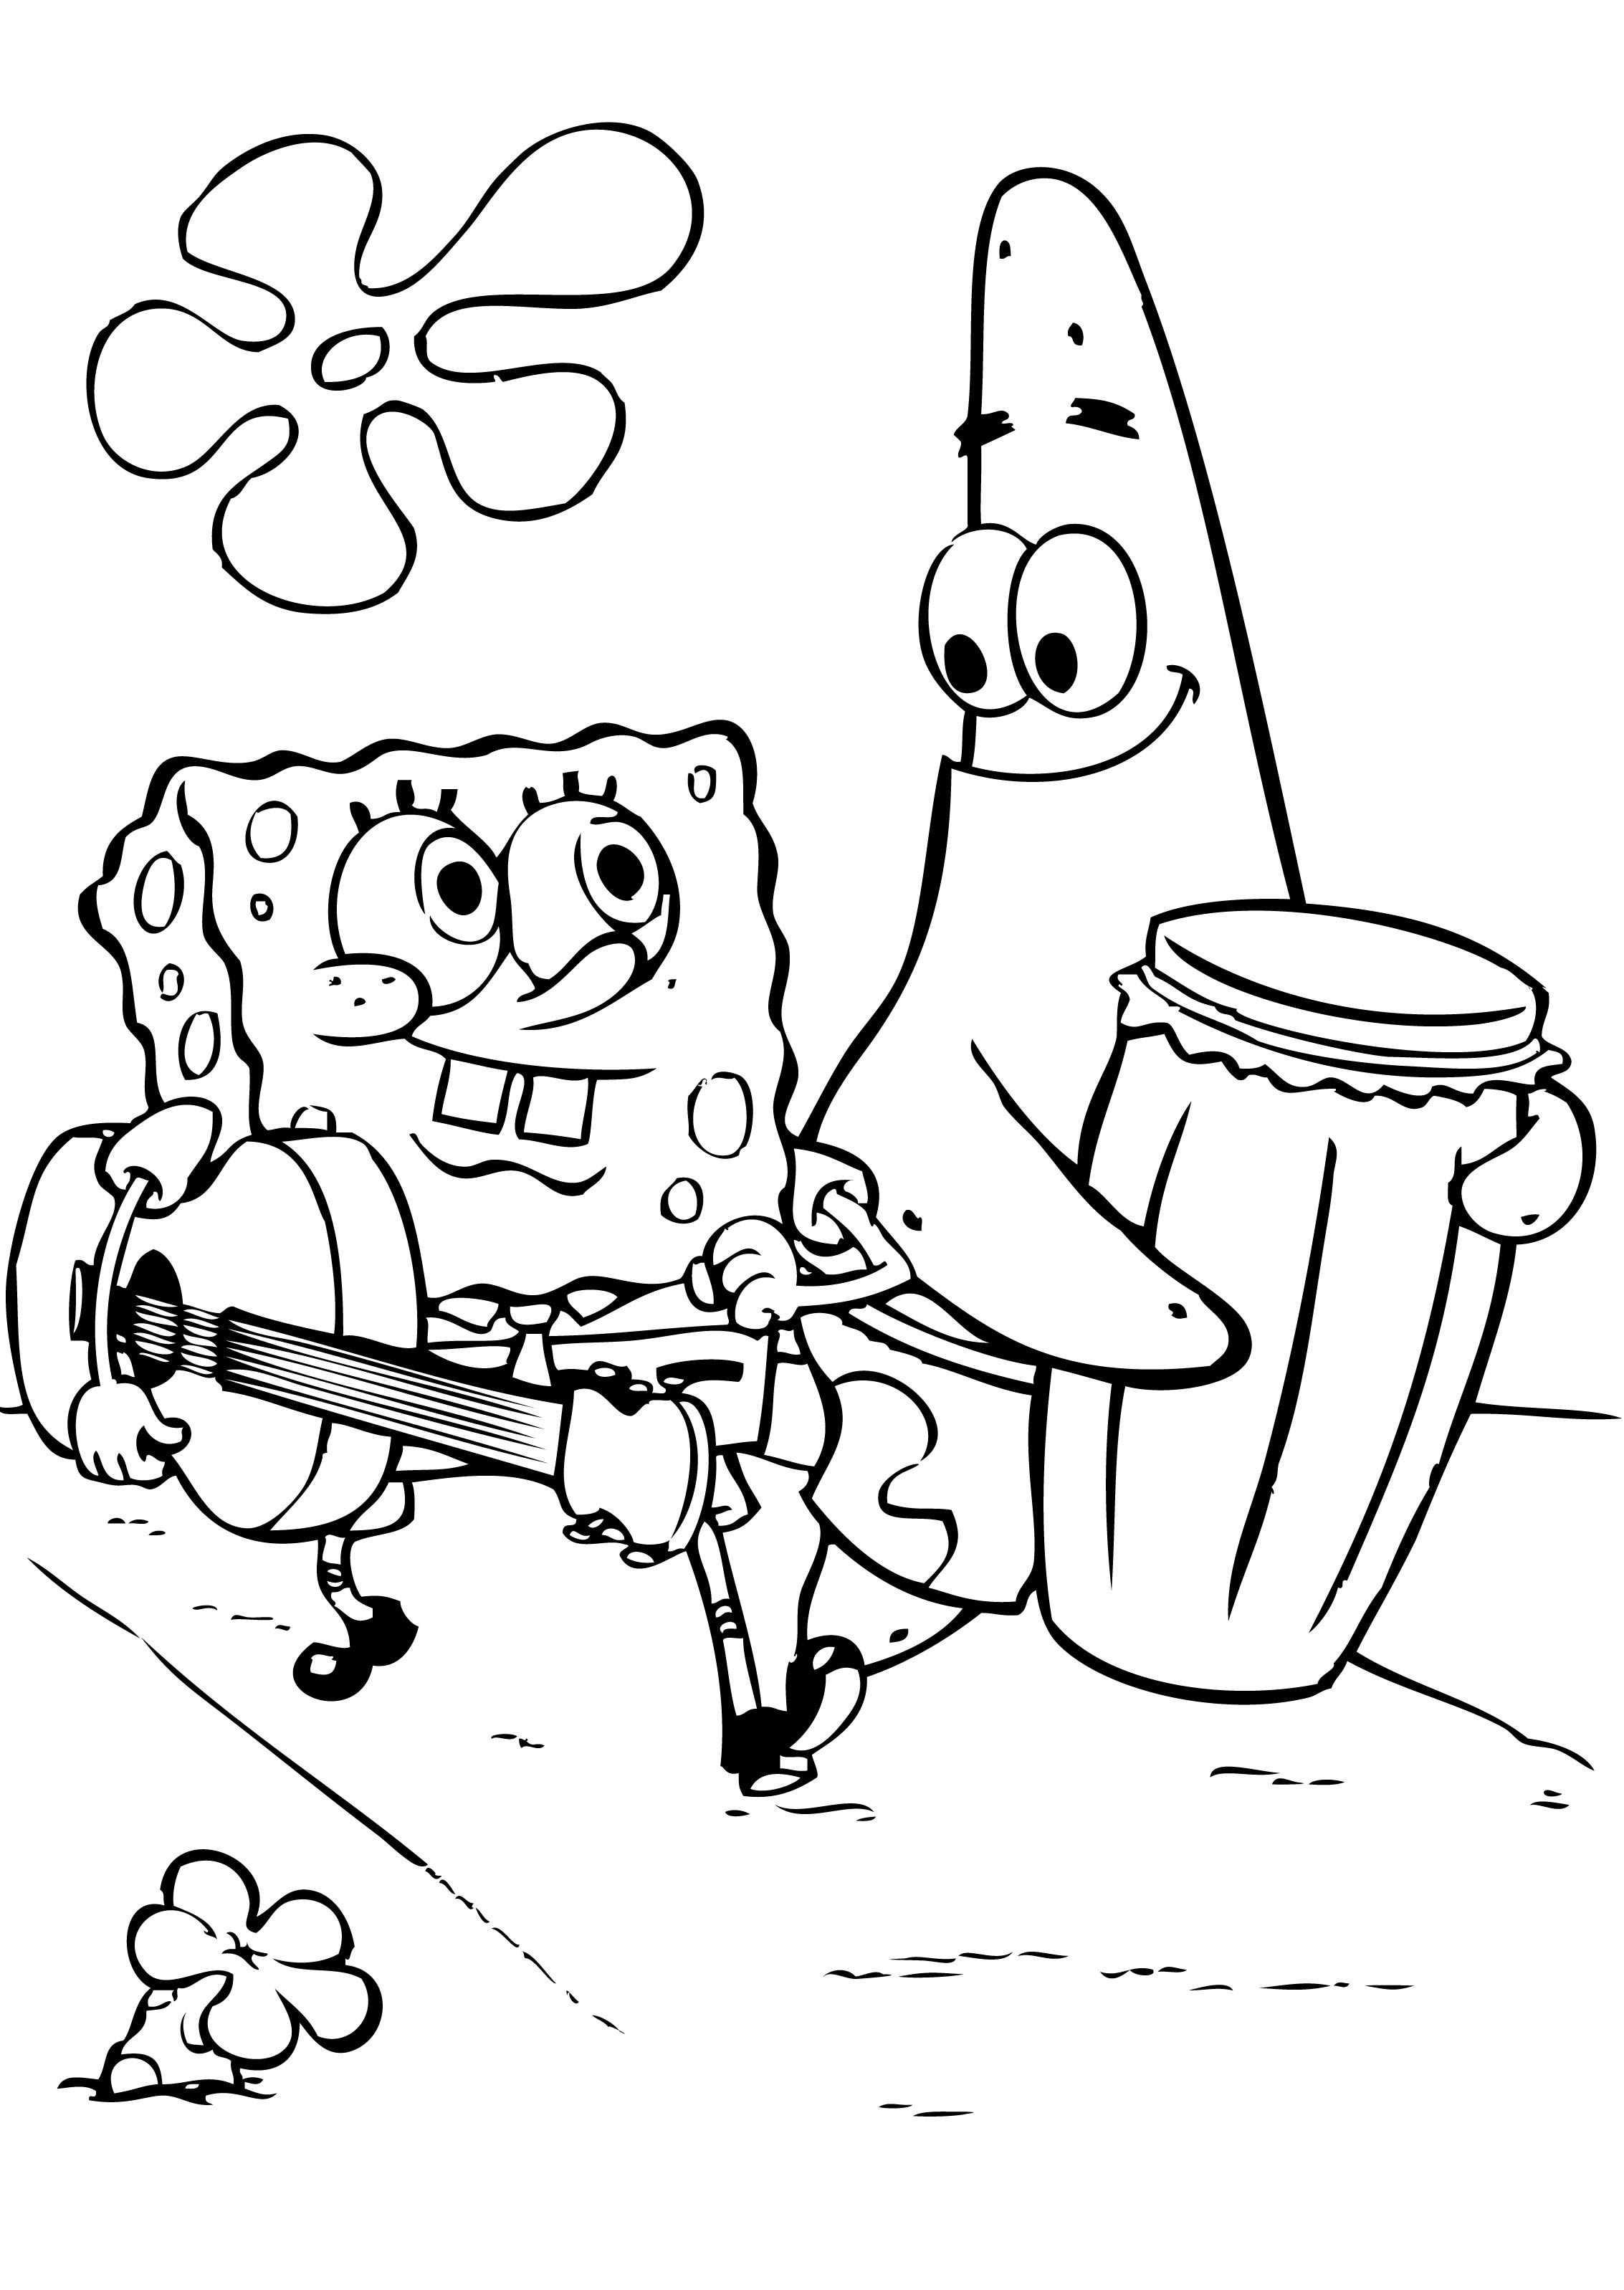 Awesome Color Spongebob Free Download